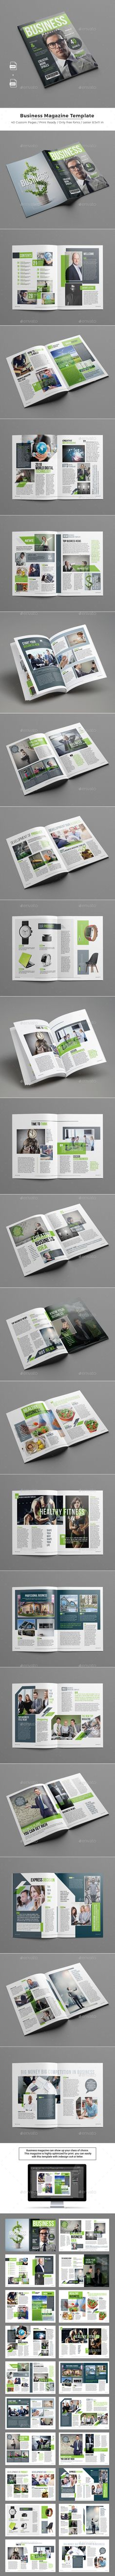 #Business #Magazine Template - Magazines Print #Templates Download here: https://graphicriver.net/item/business-magazine-template/19479725?ref=alena994